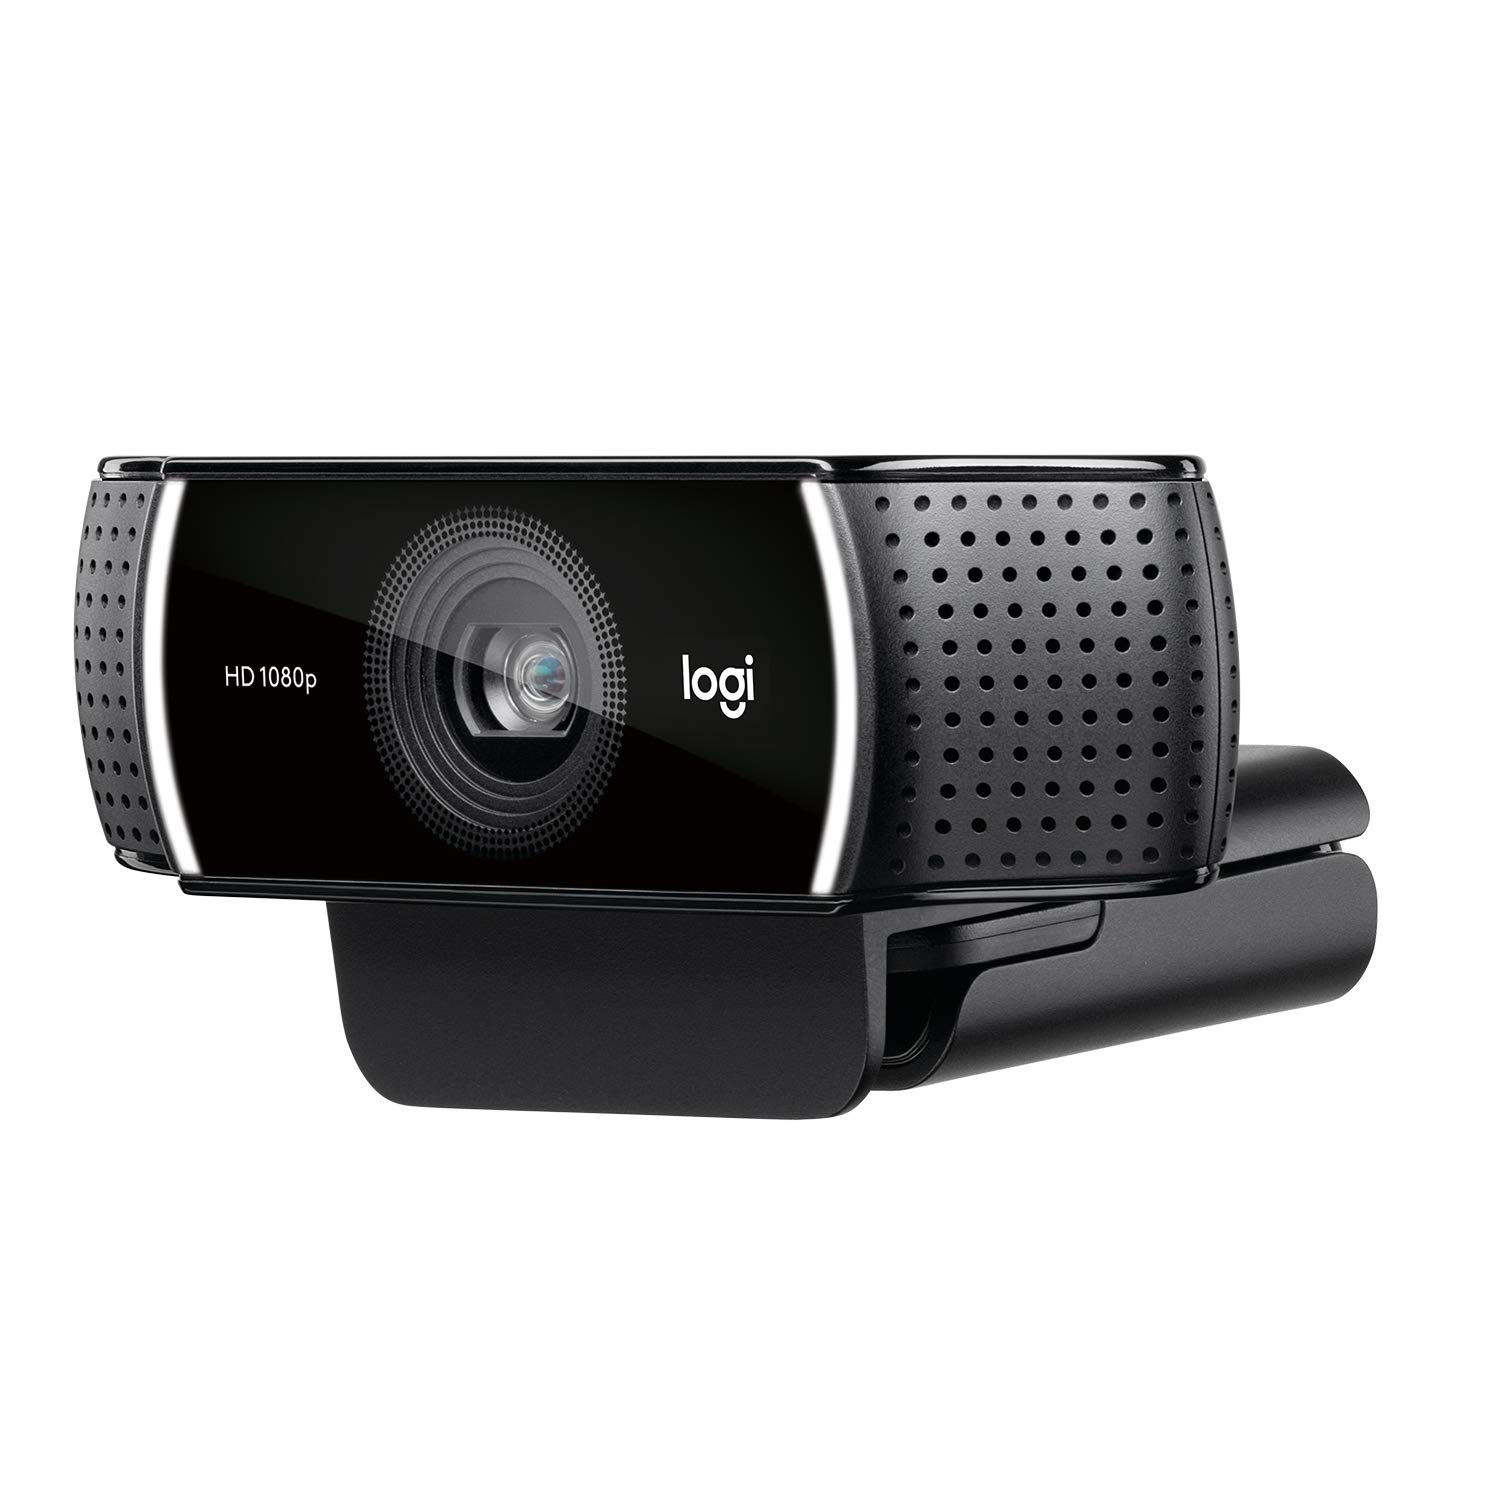 Logitech C922x Pro Stream Webcam – Full 1080p HD Camera – Background Replacement Technology for YouTube or Twitch Streaming by Logitech (Image #5)